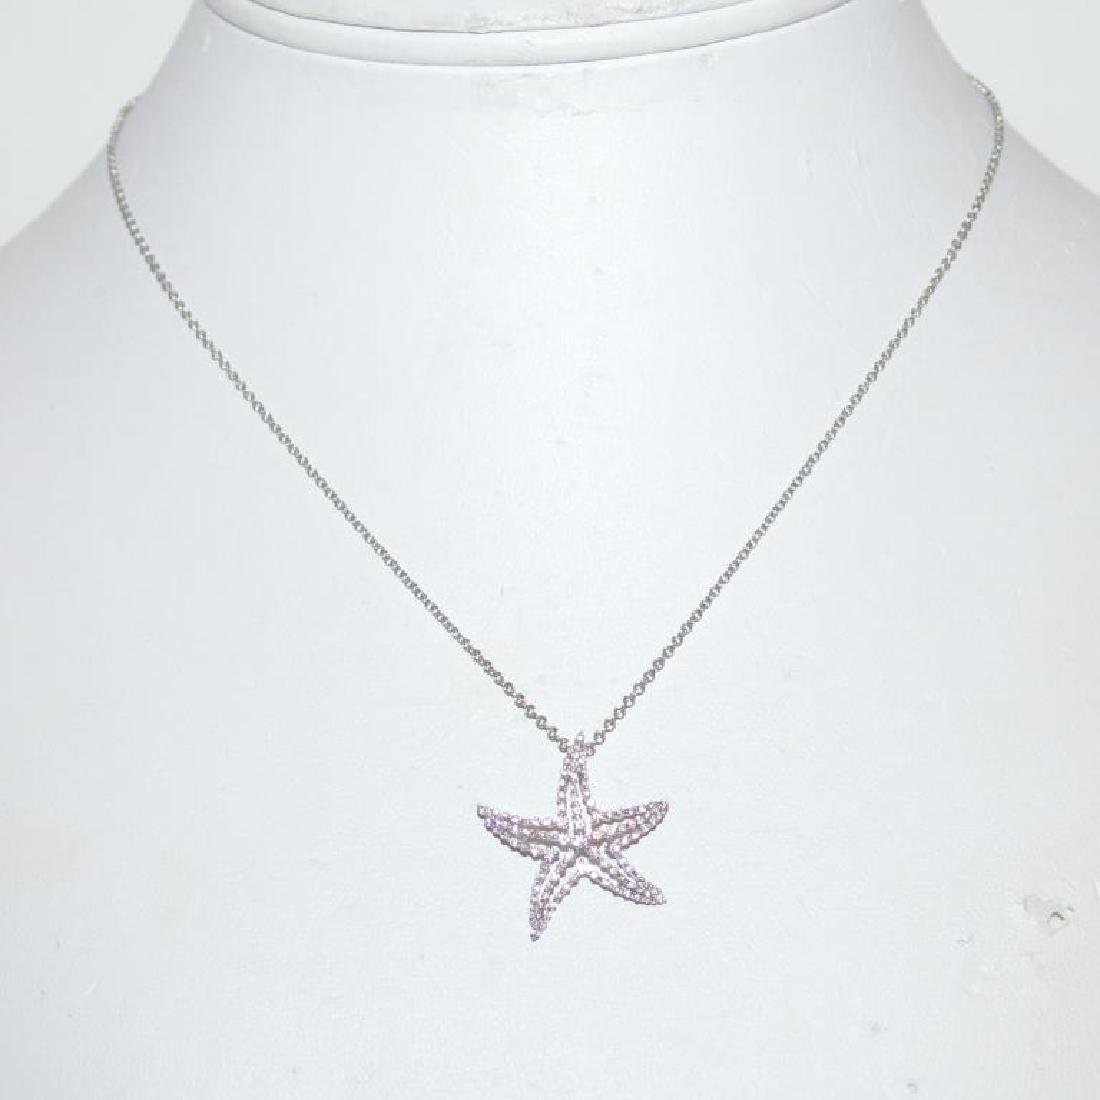 18kt white gold diamond starfish pendant - 2